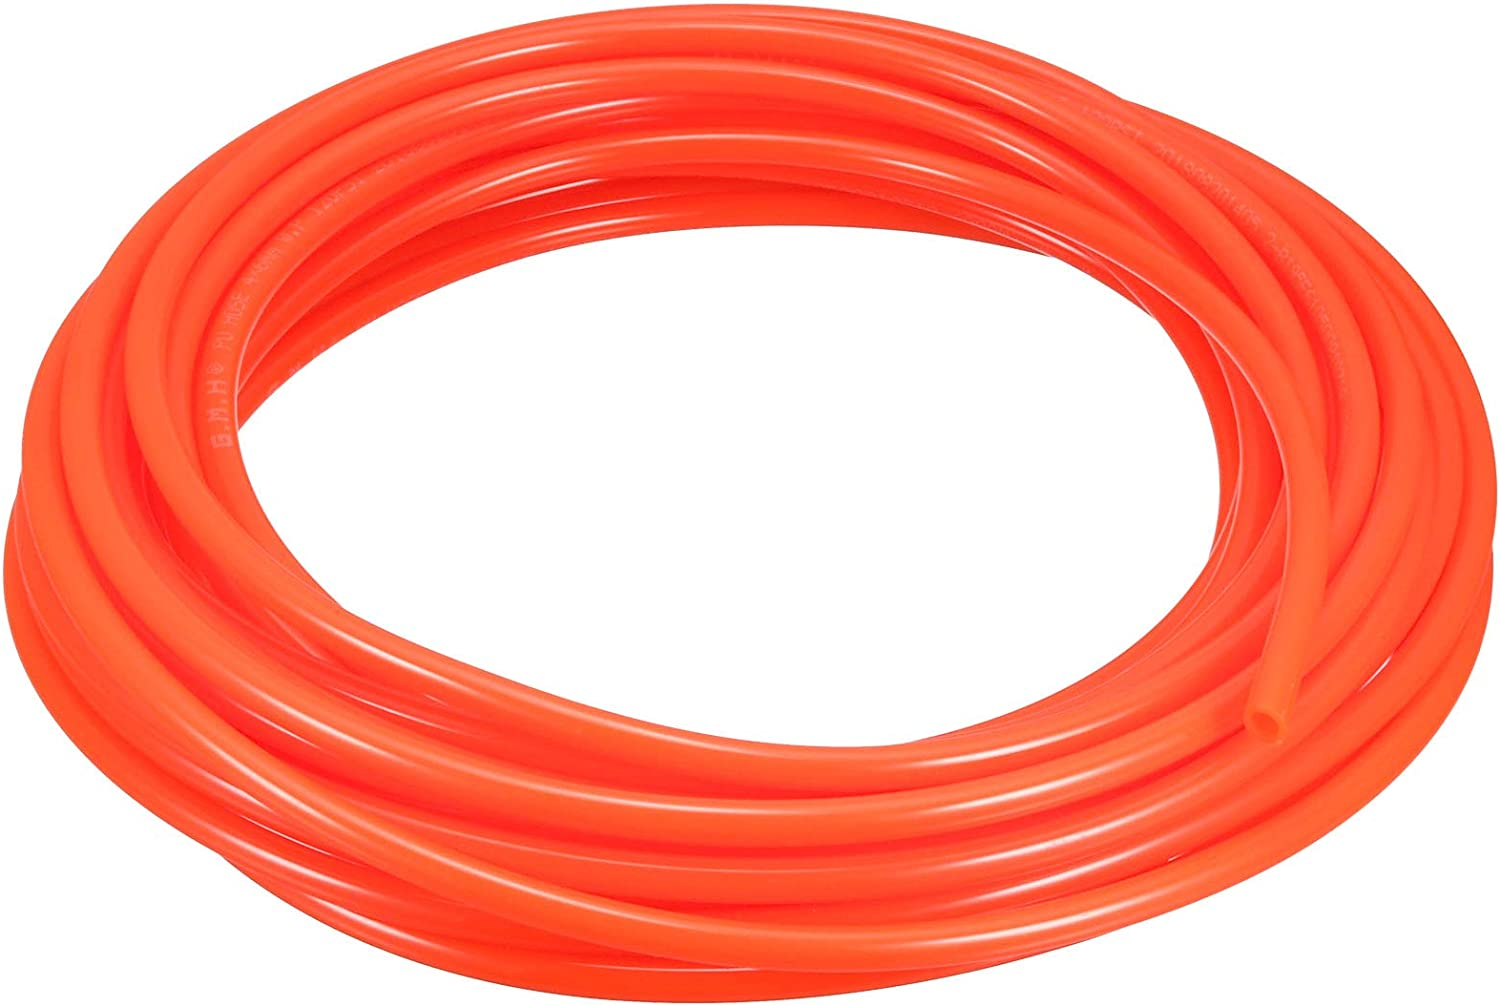 uxcell Pneumatic Air Directly managed store Tubing 6mm OD Dallas Mall x Po Inch 10m ID 394 PU 4mm